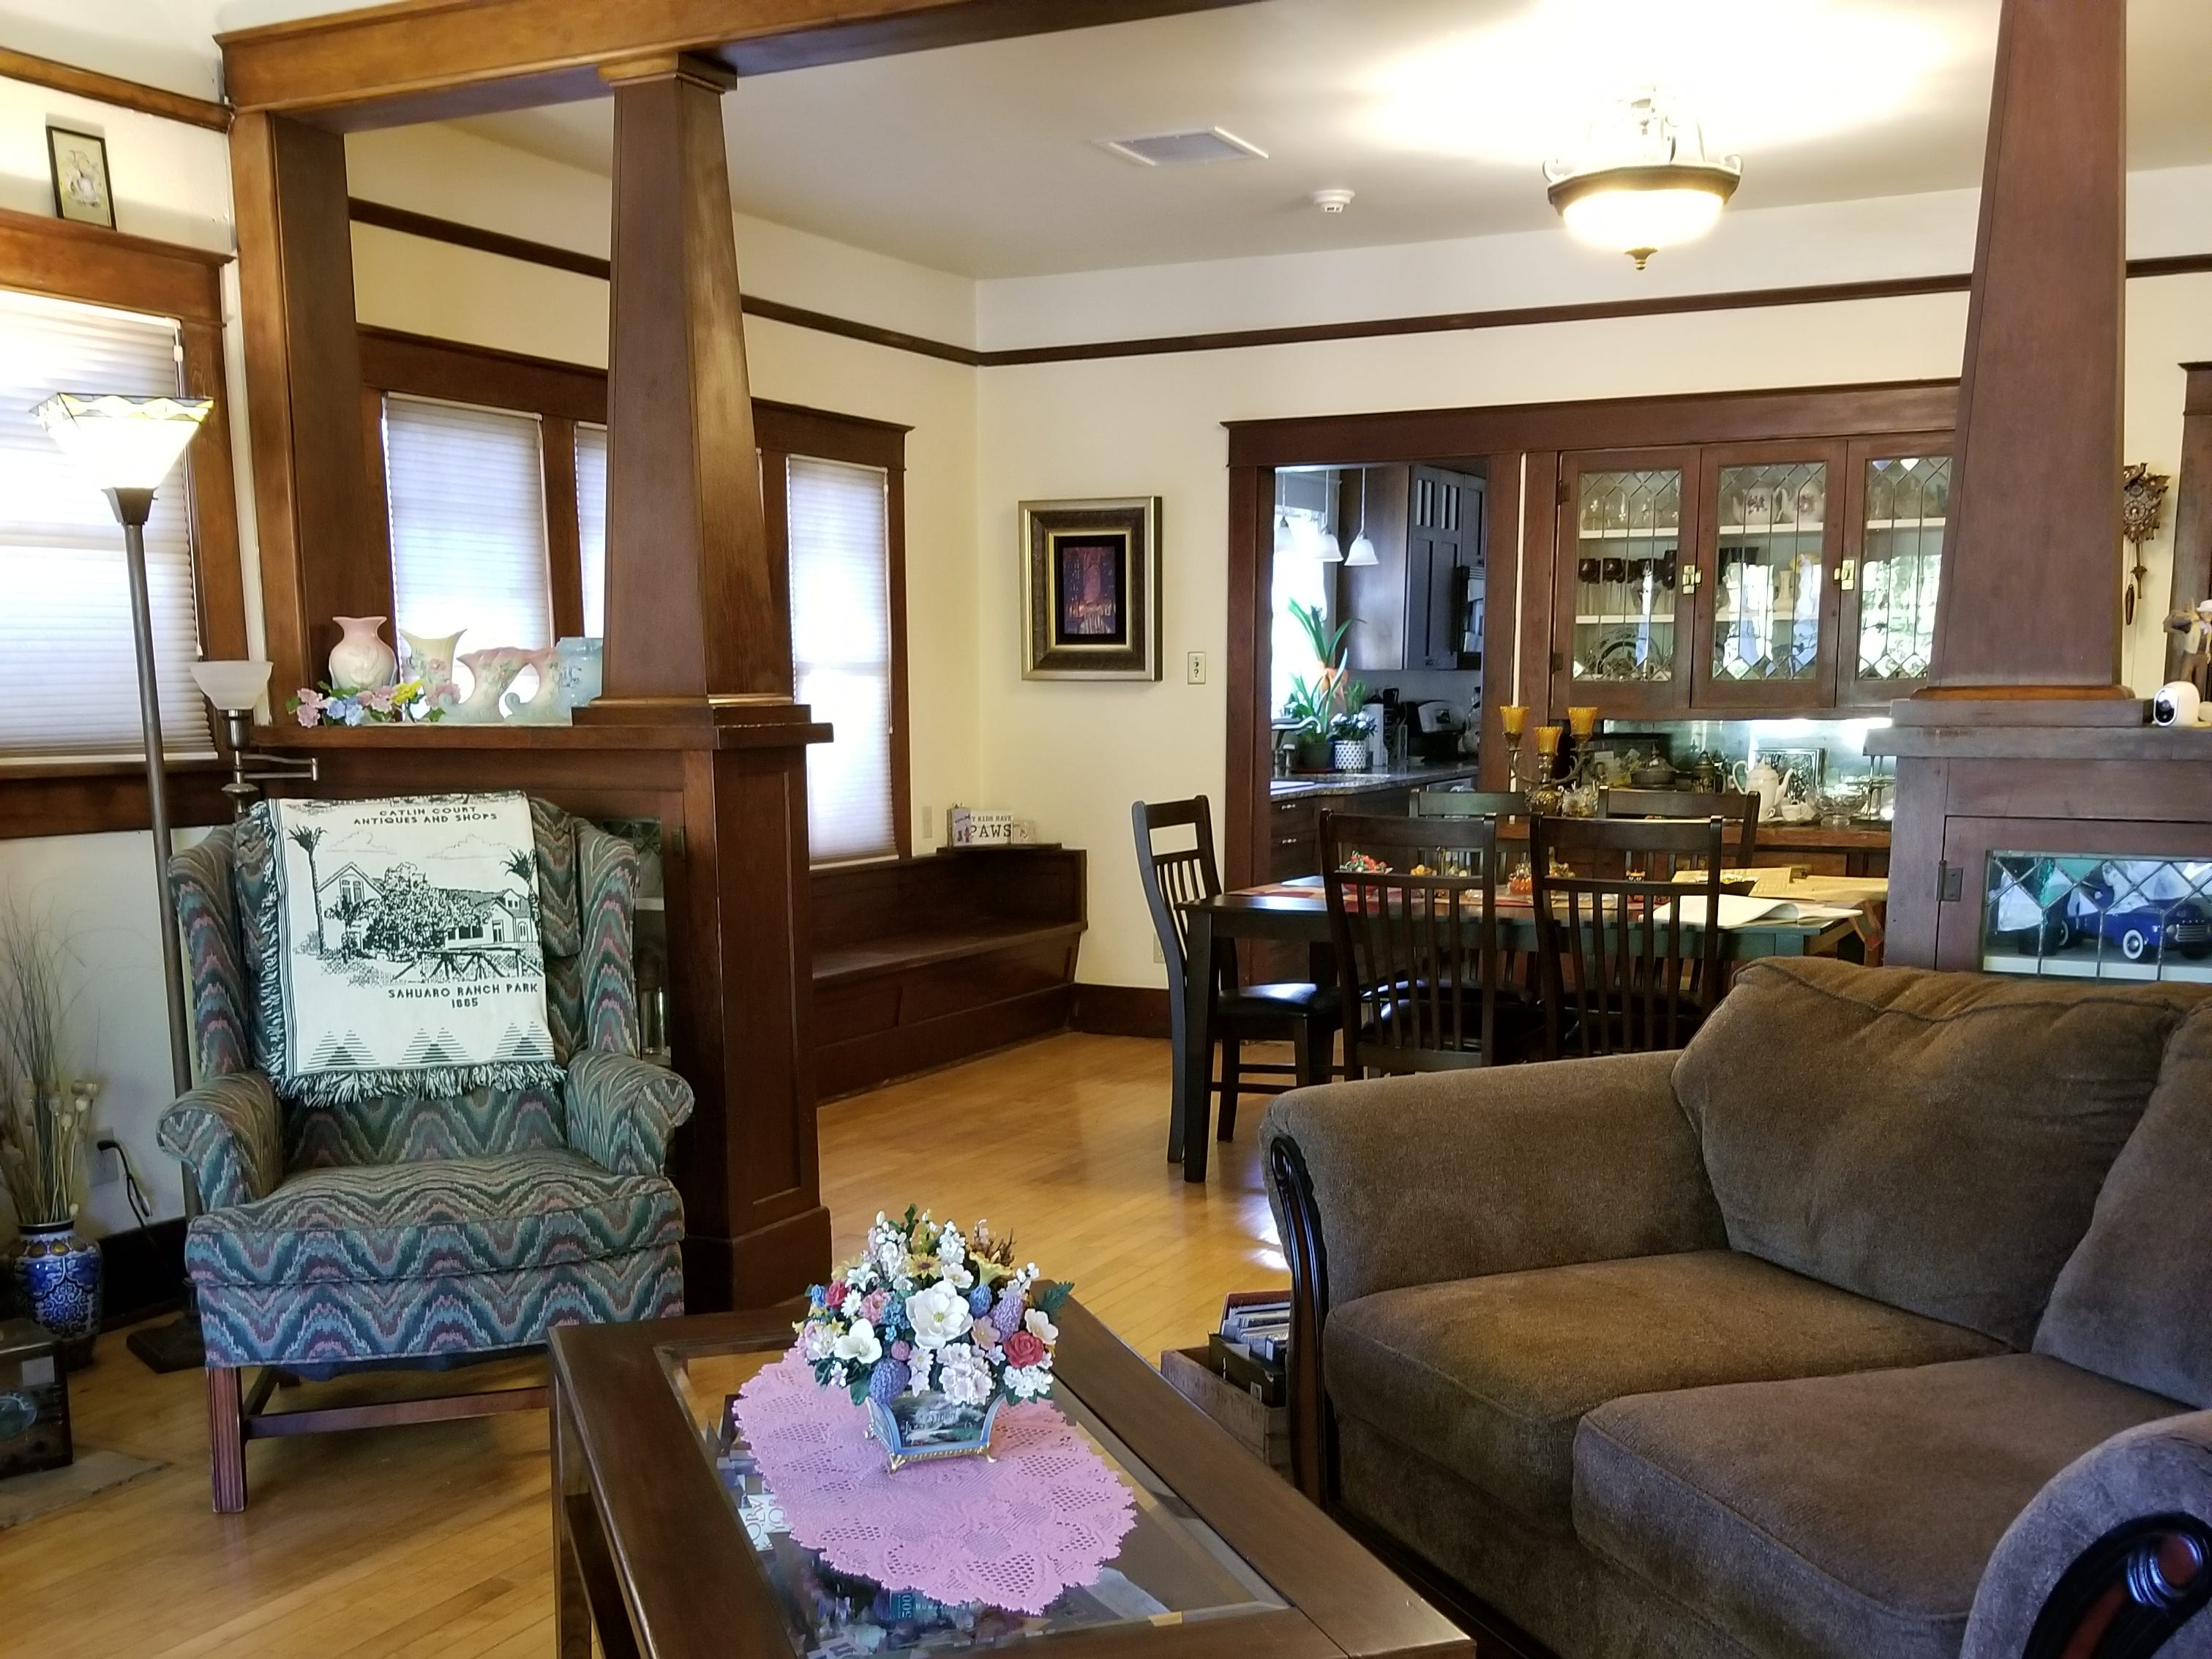 The living room, dining room and parlor still have their original hardwood floors.